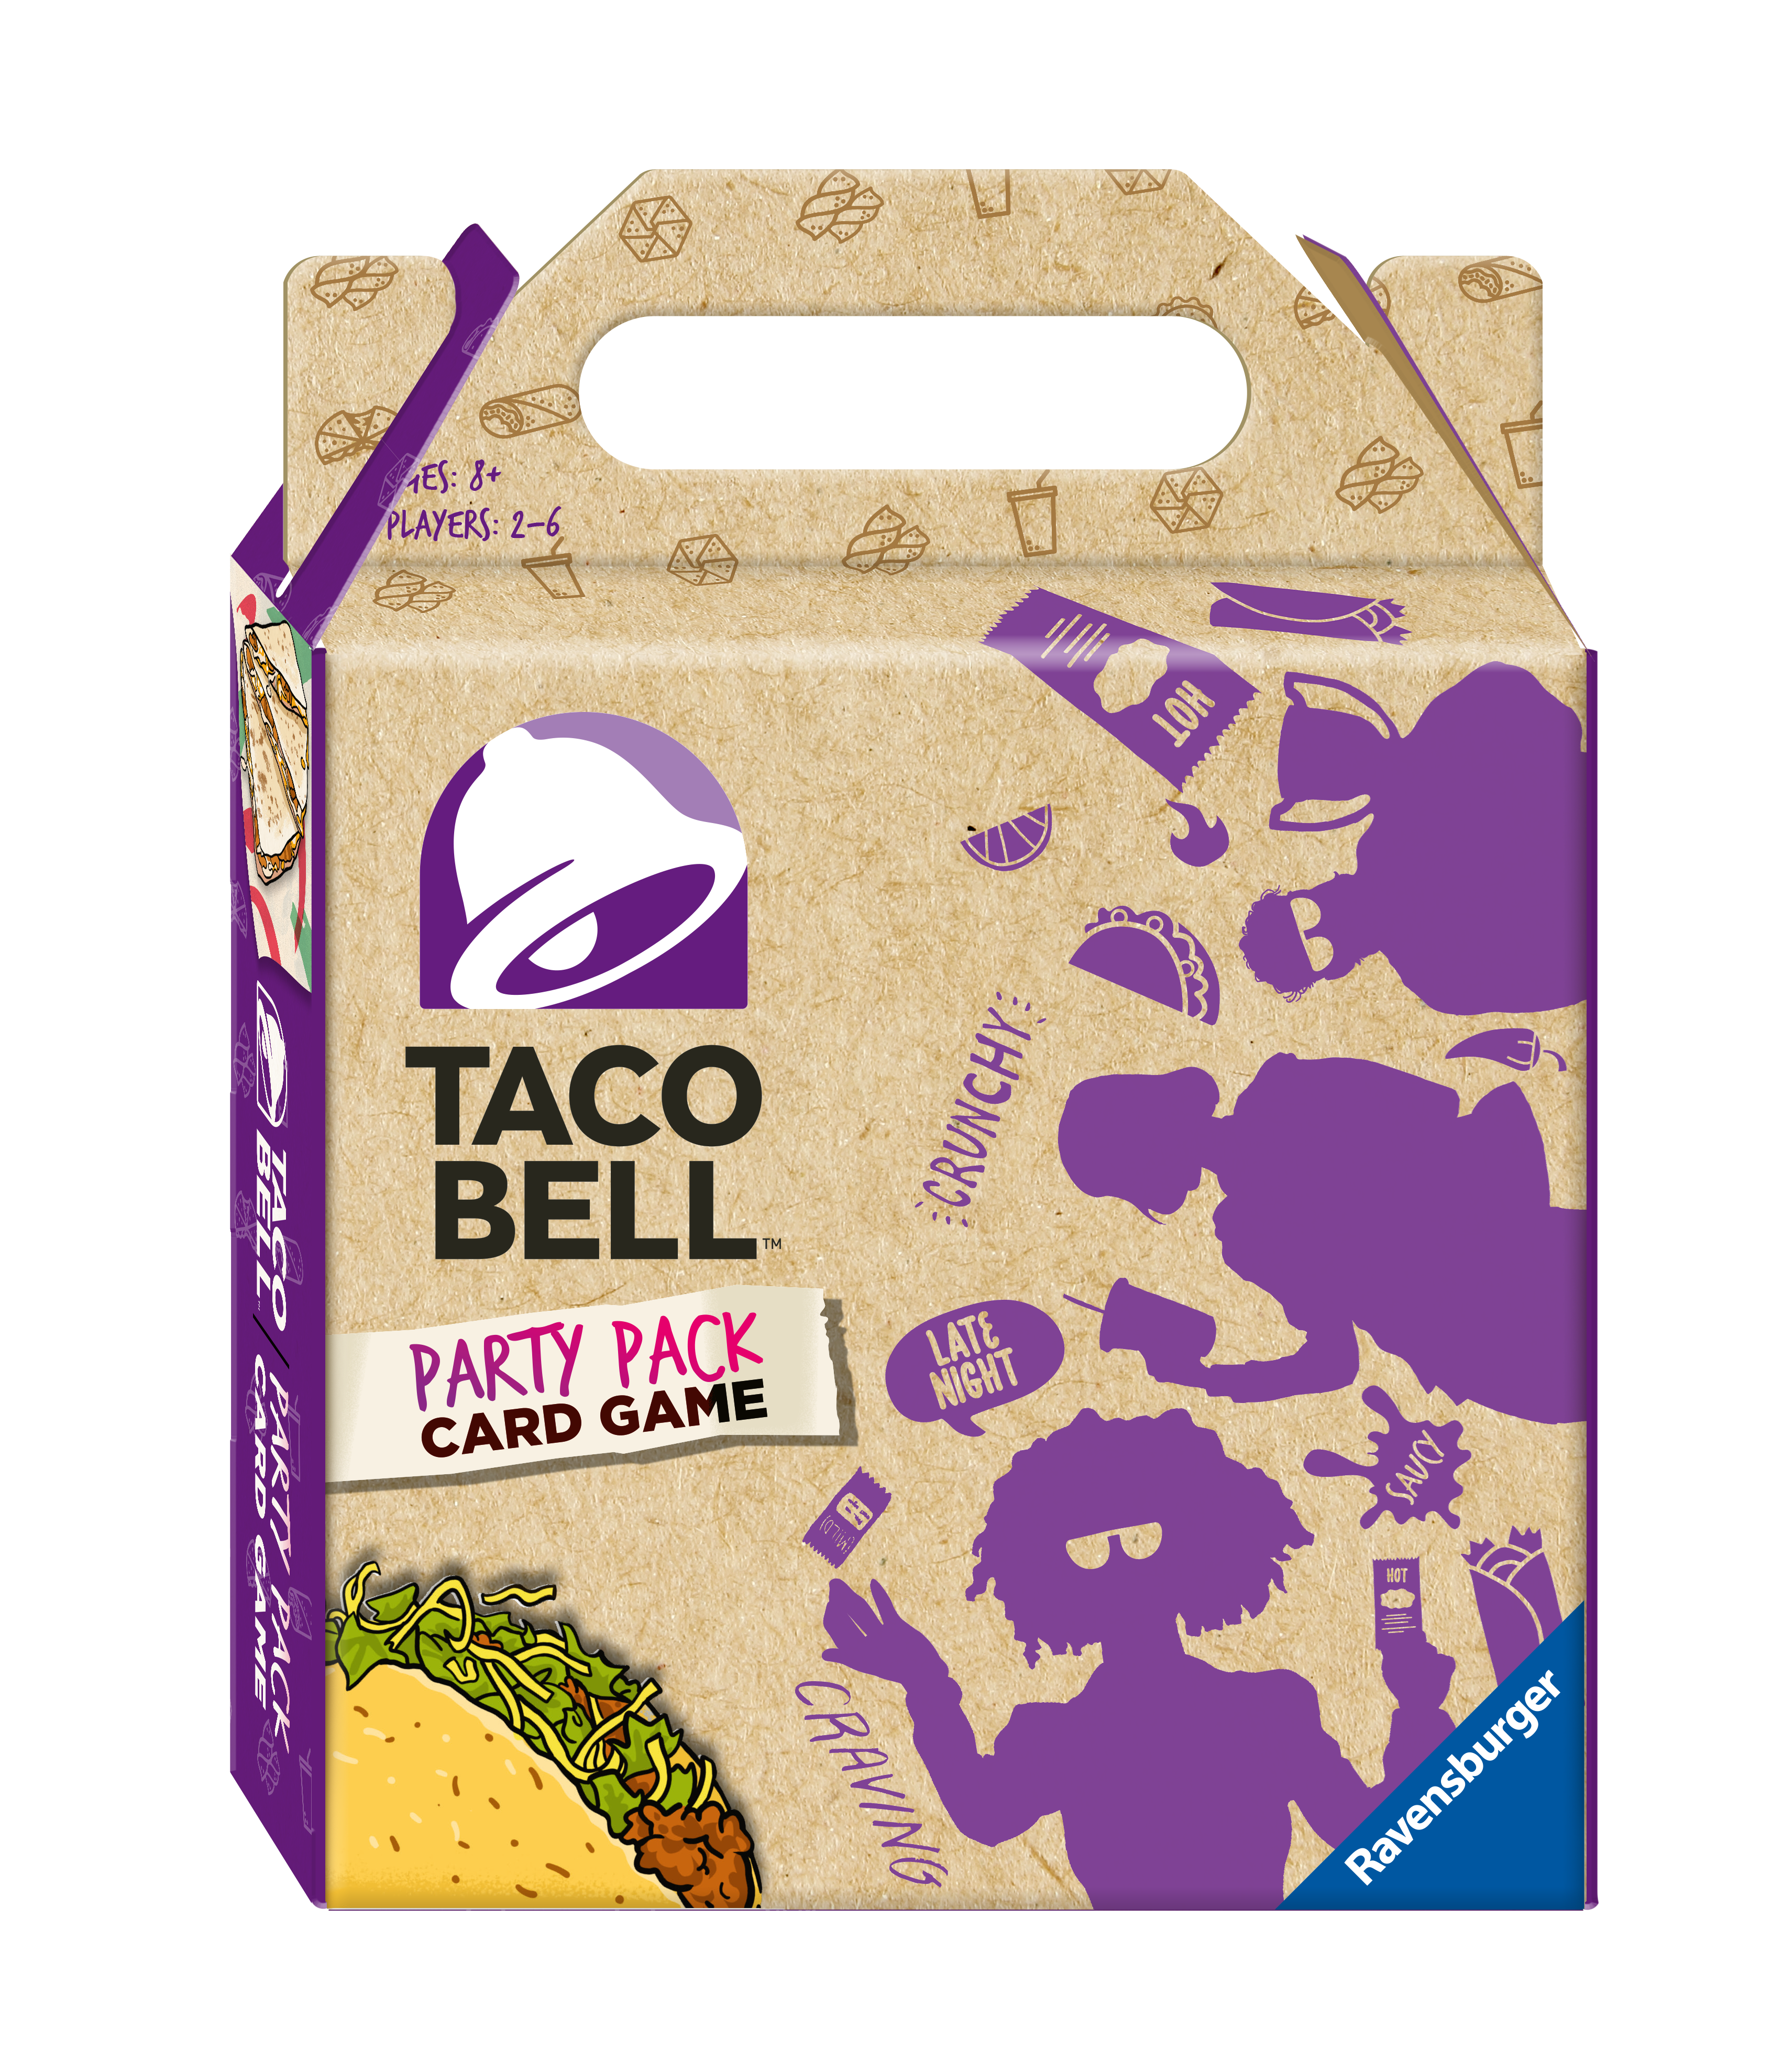 Taco Bell Party Pack Card Game